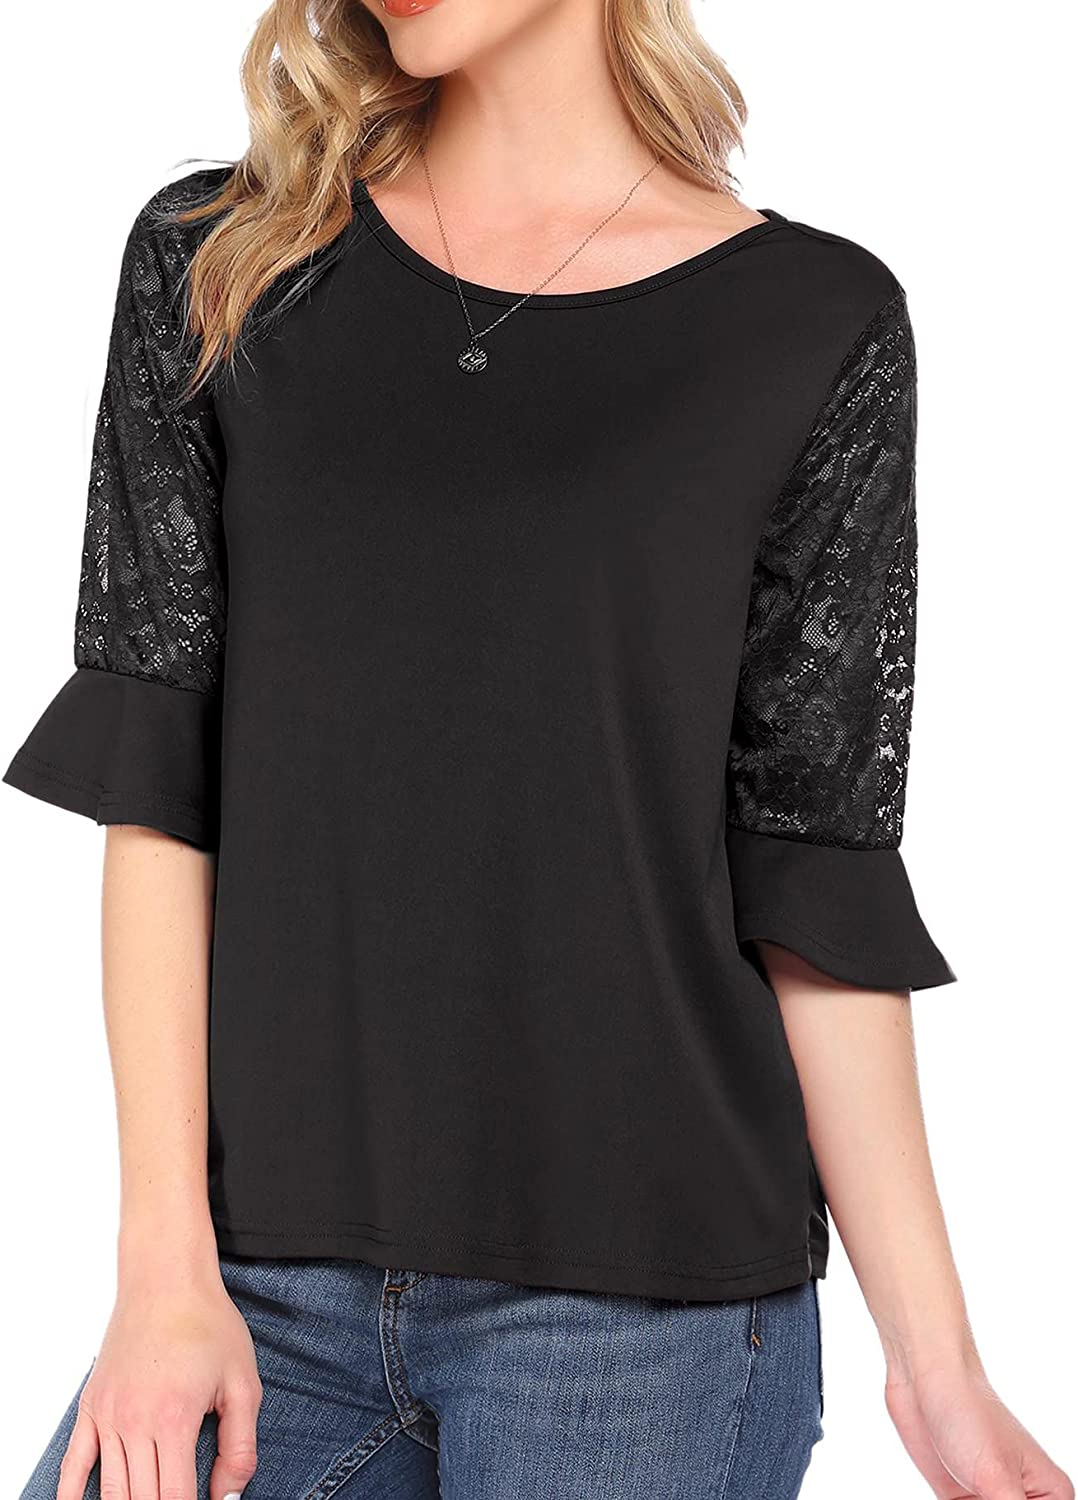 Meaneor 3/4 Sleeve Shirts for Women Tops and Blouses Round Neck Lace Sleeve T-Shirts for Women S-XXL